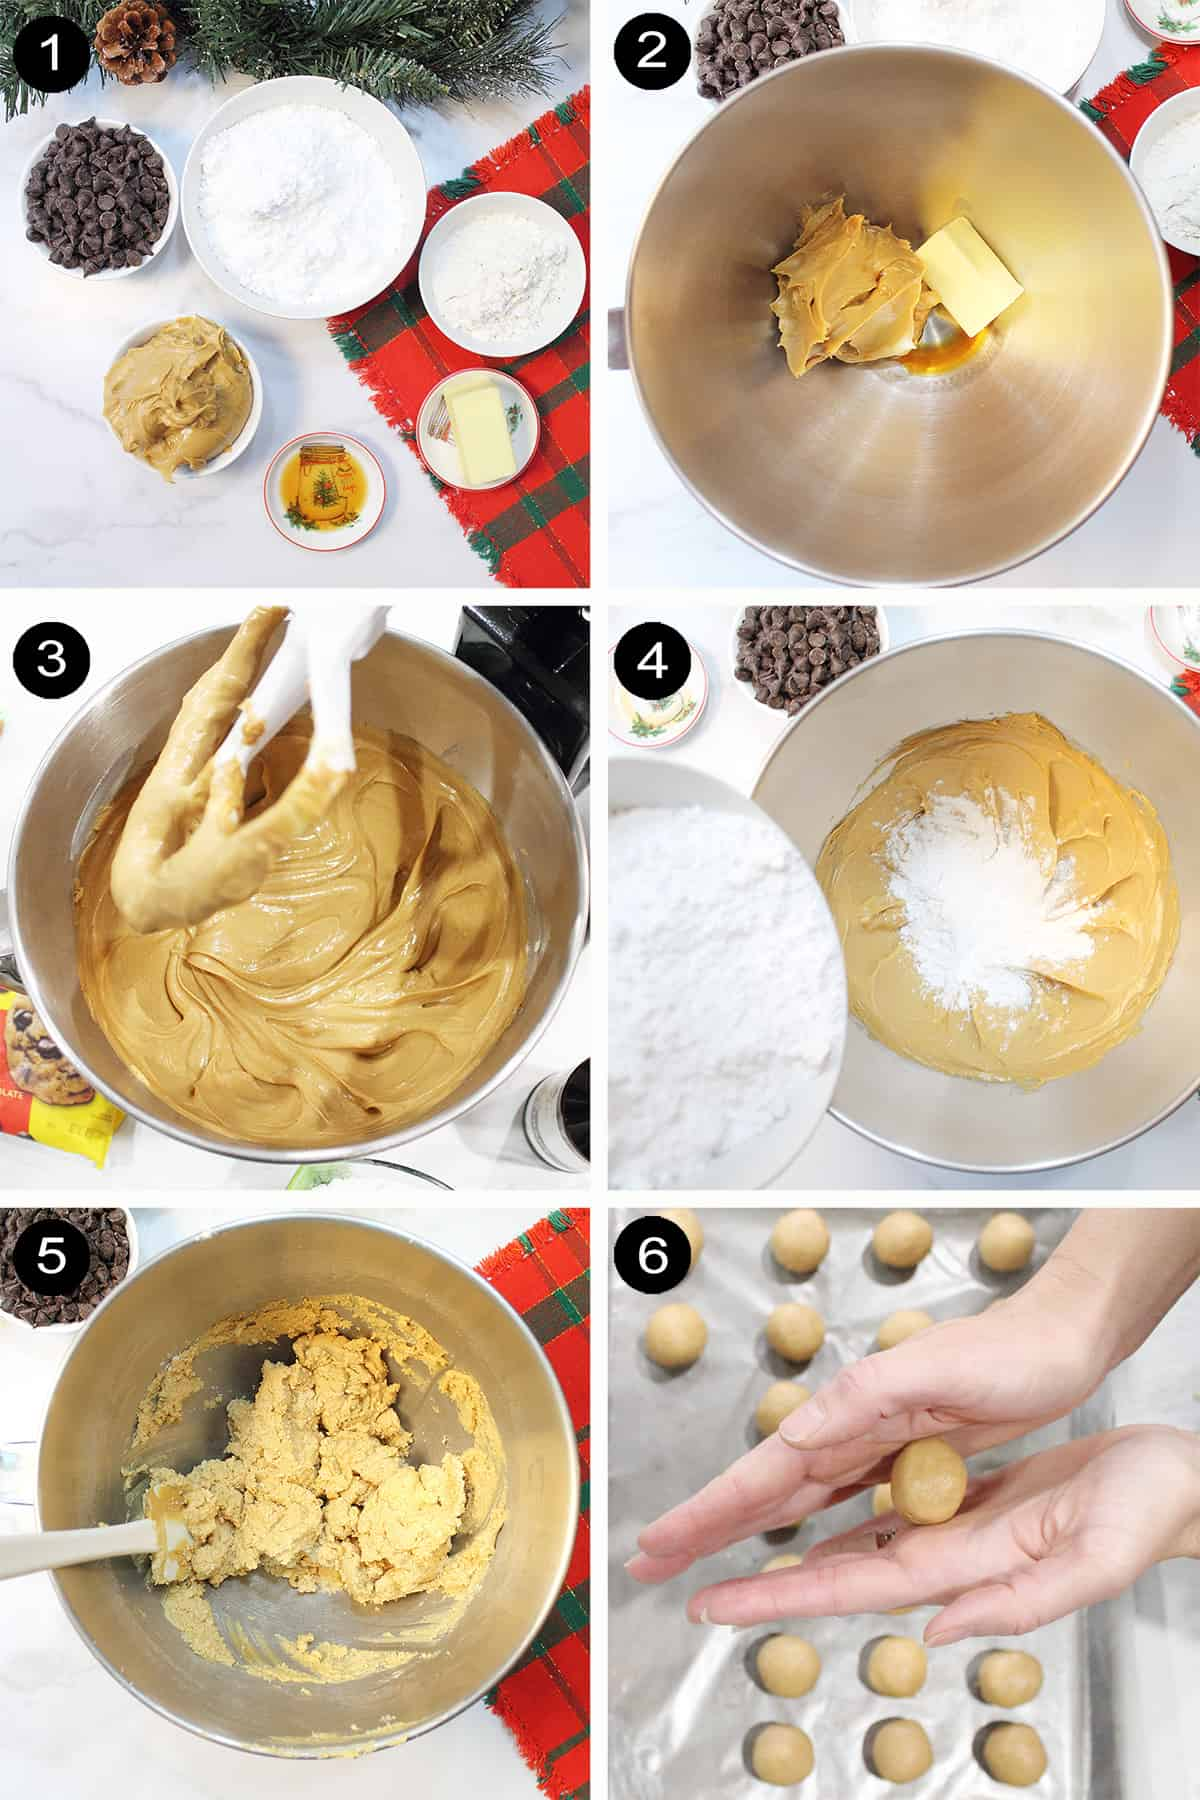 Steps to make buckeye batter.